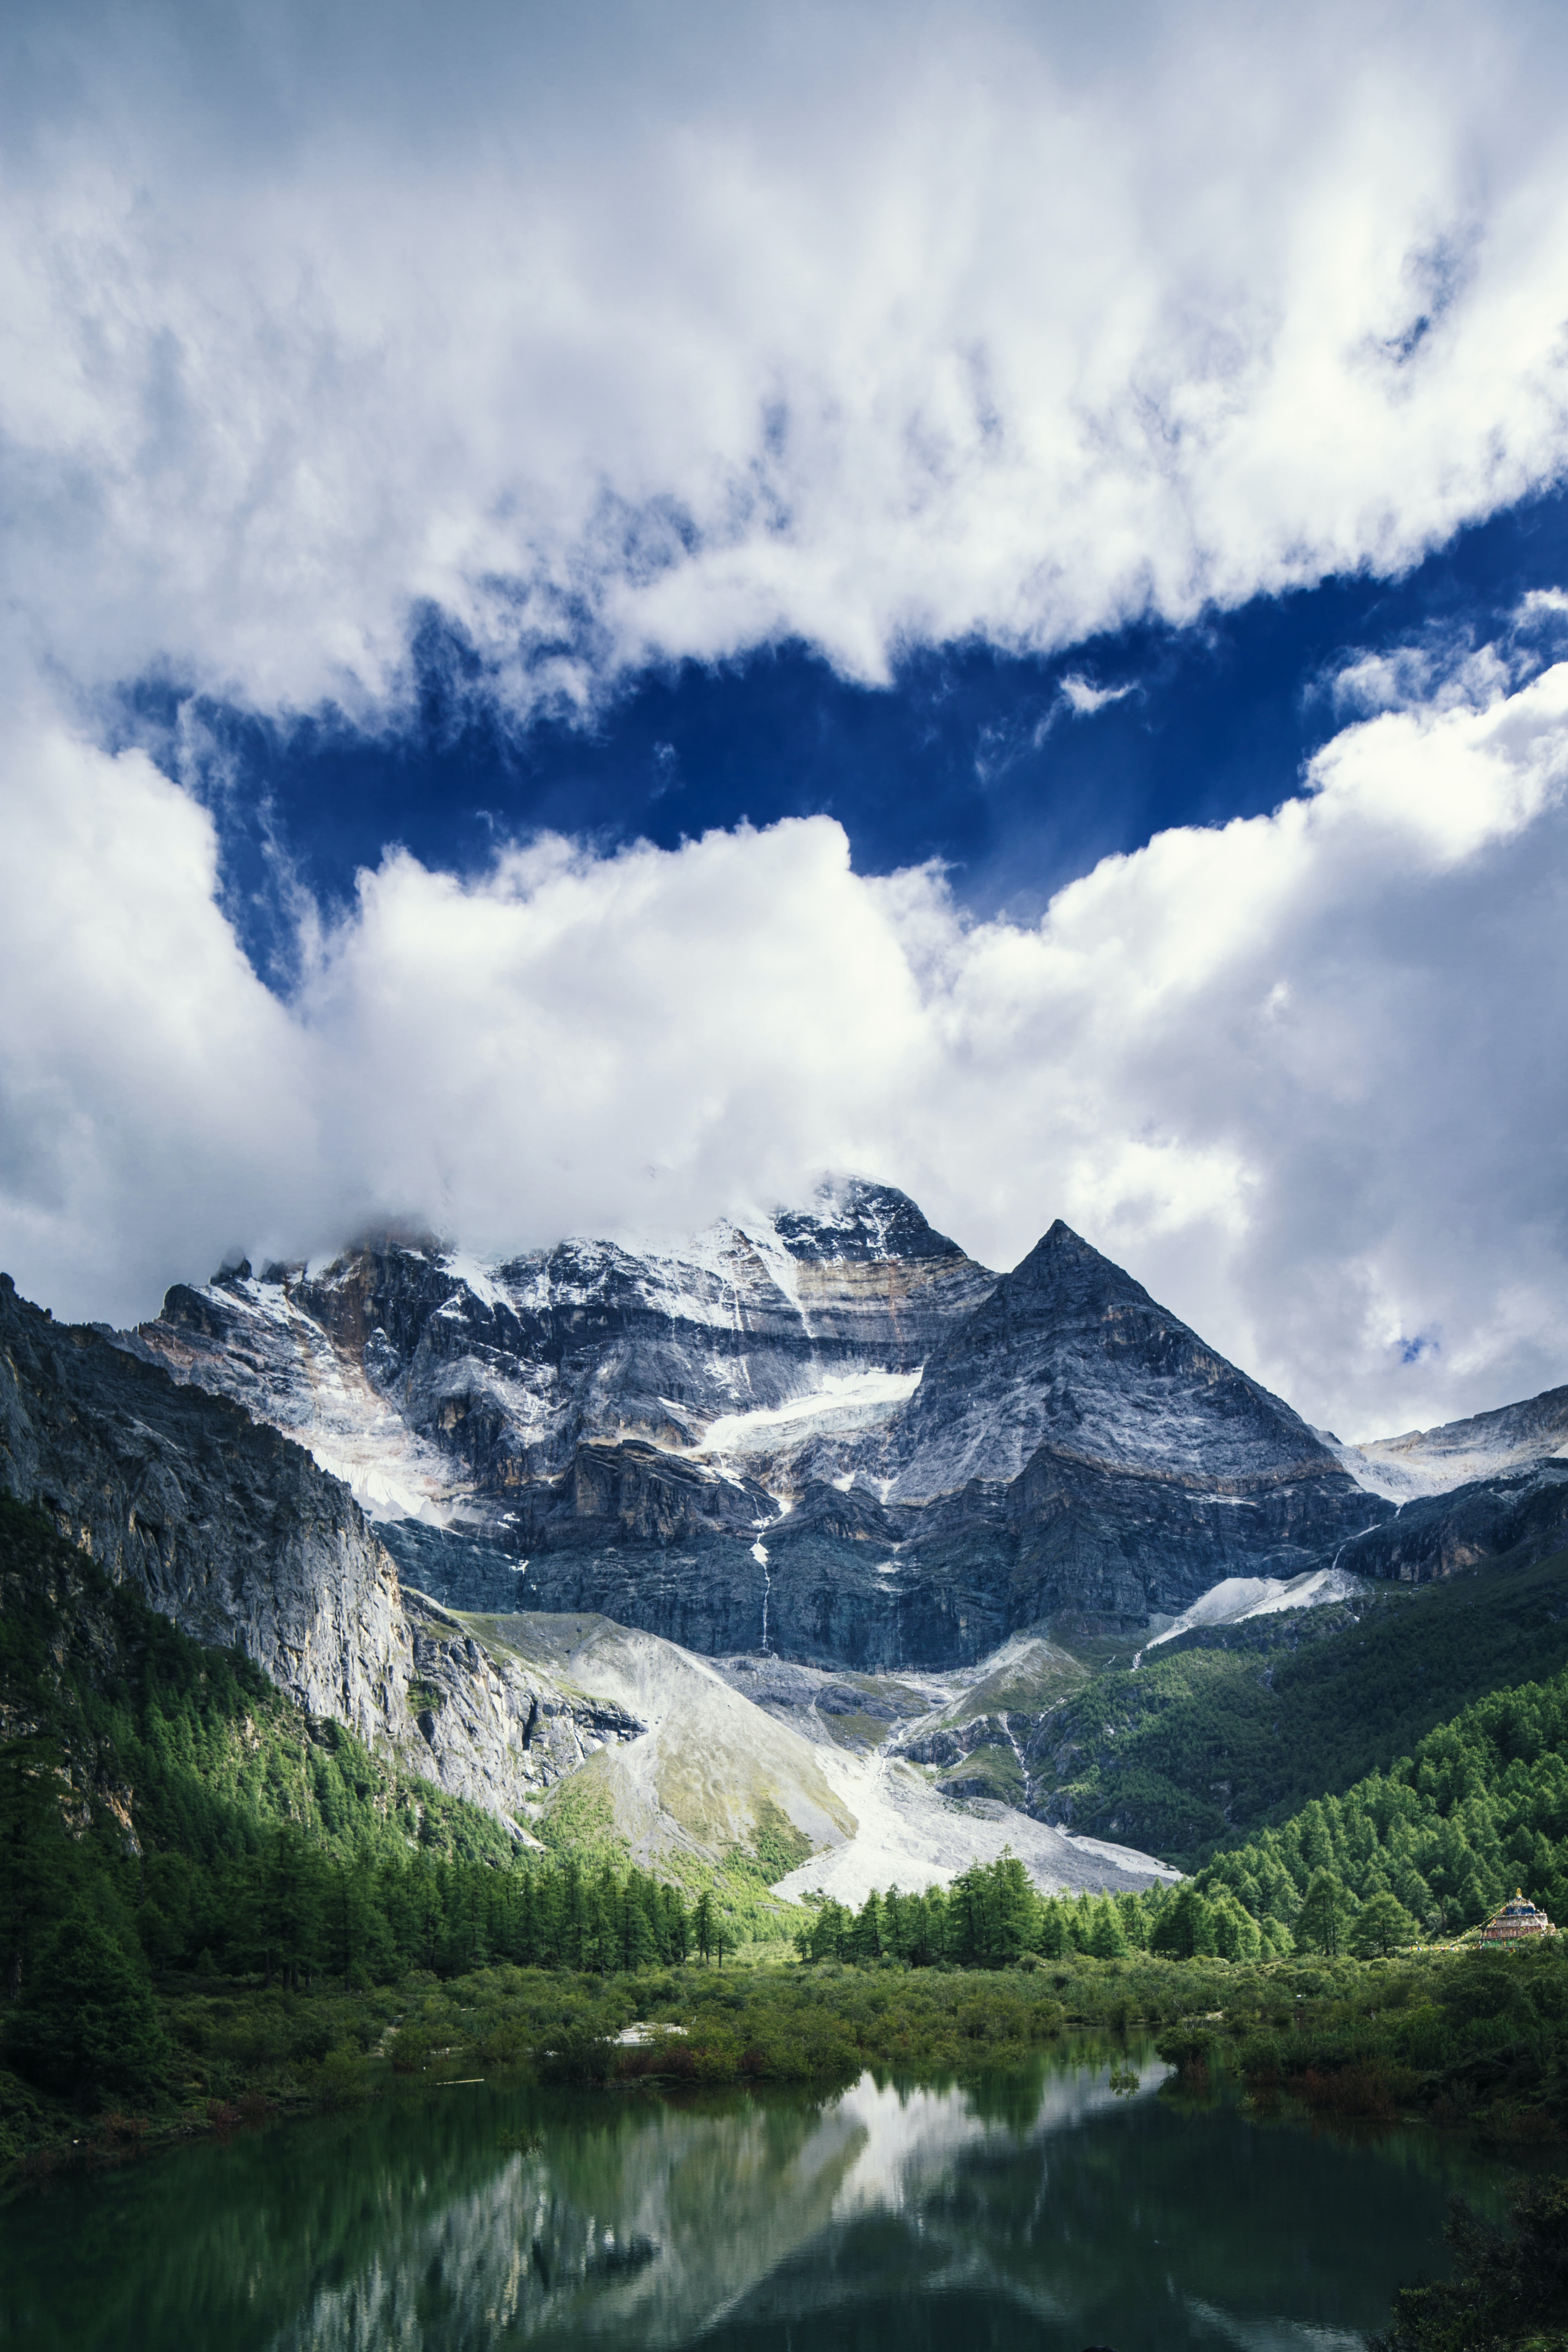 landscape photography of mountains, plants, and river under clouds